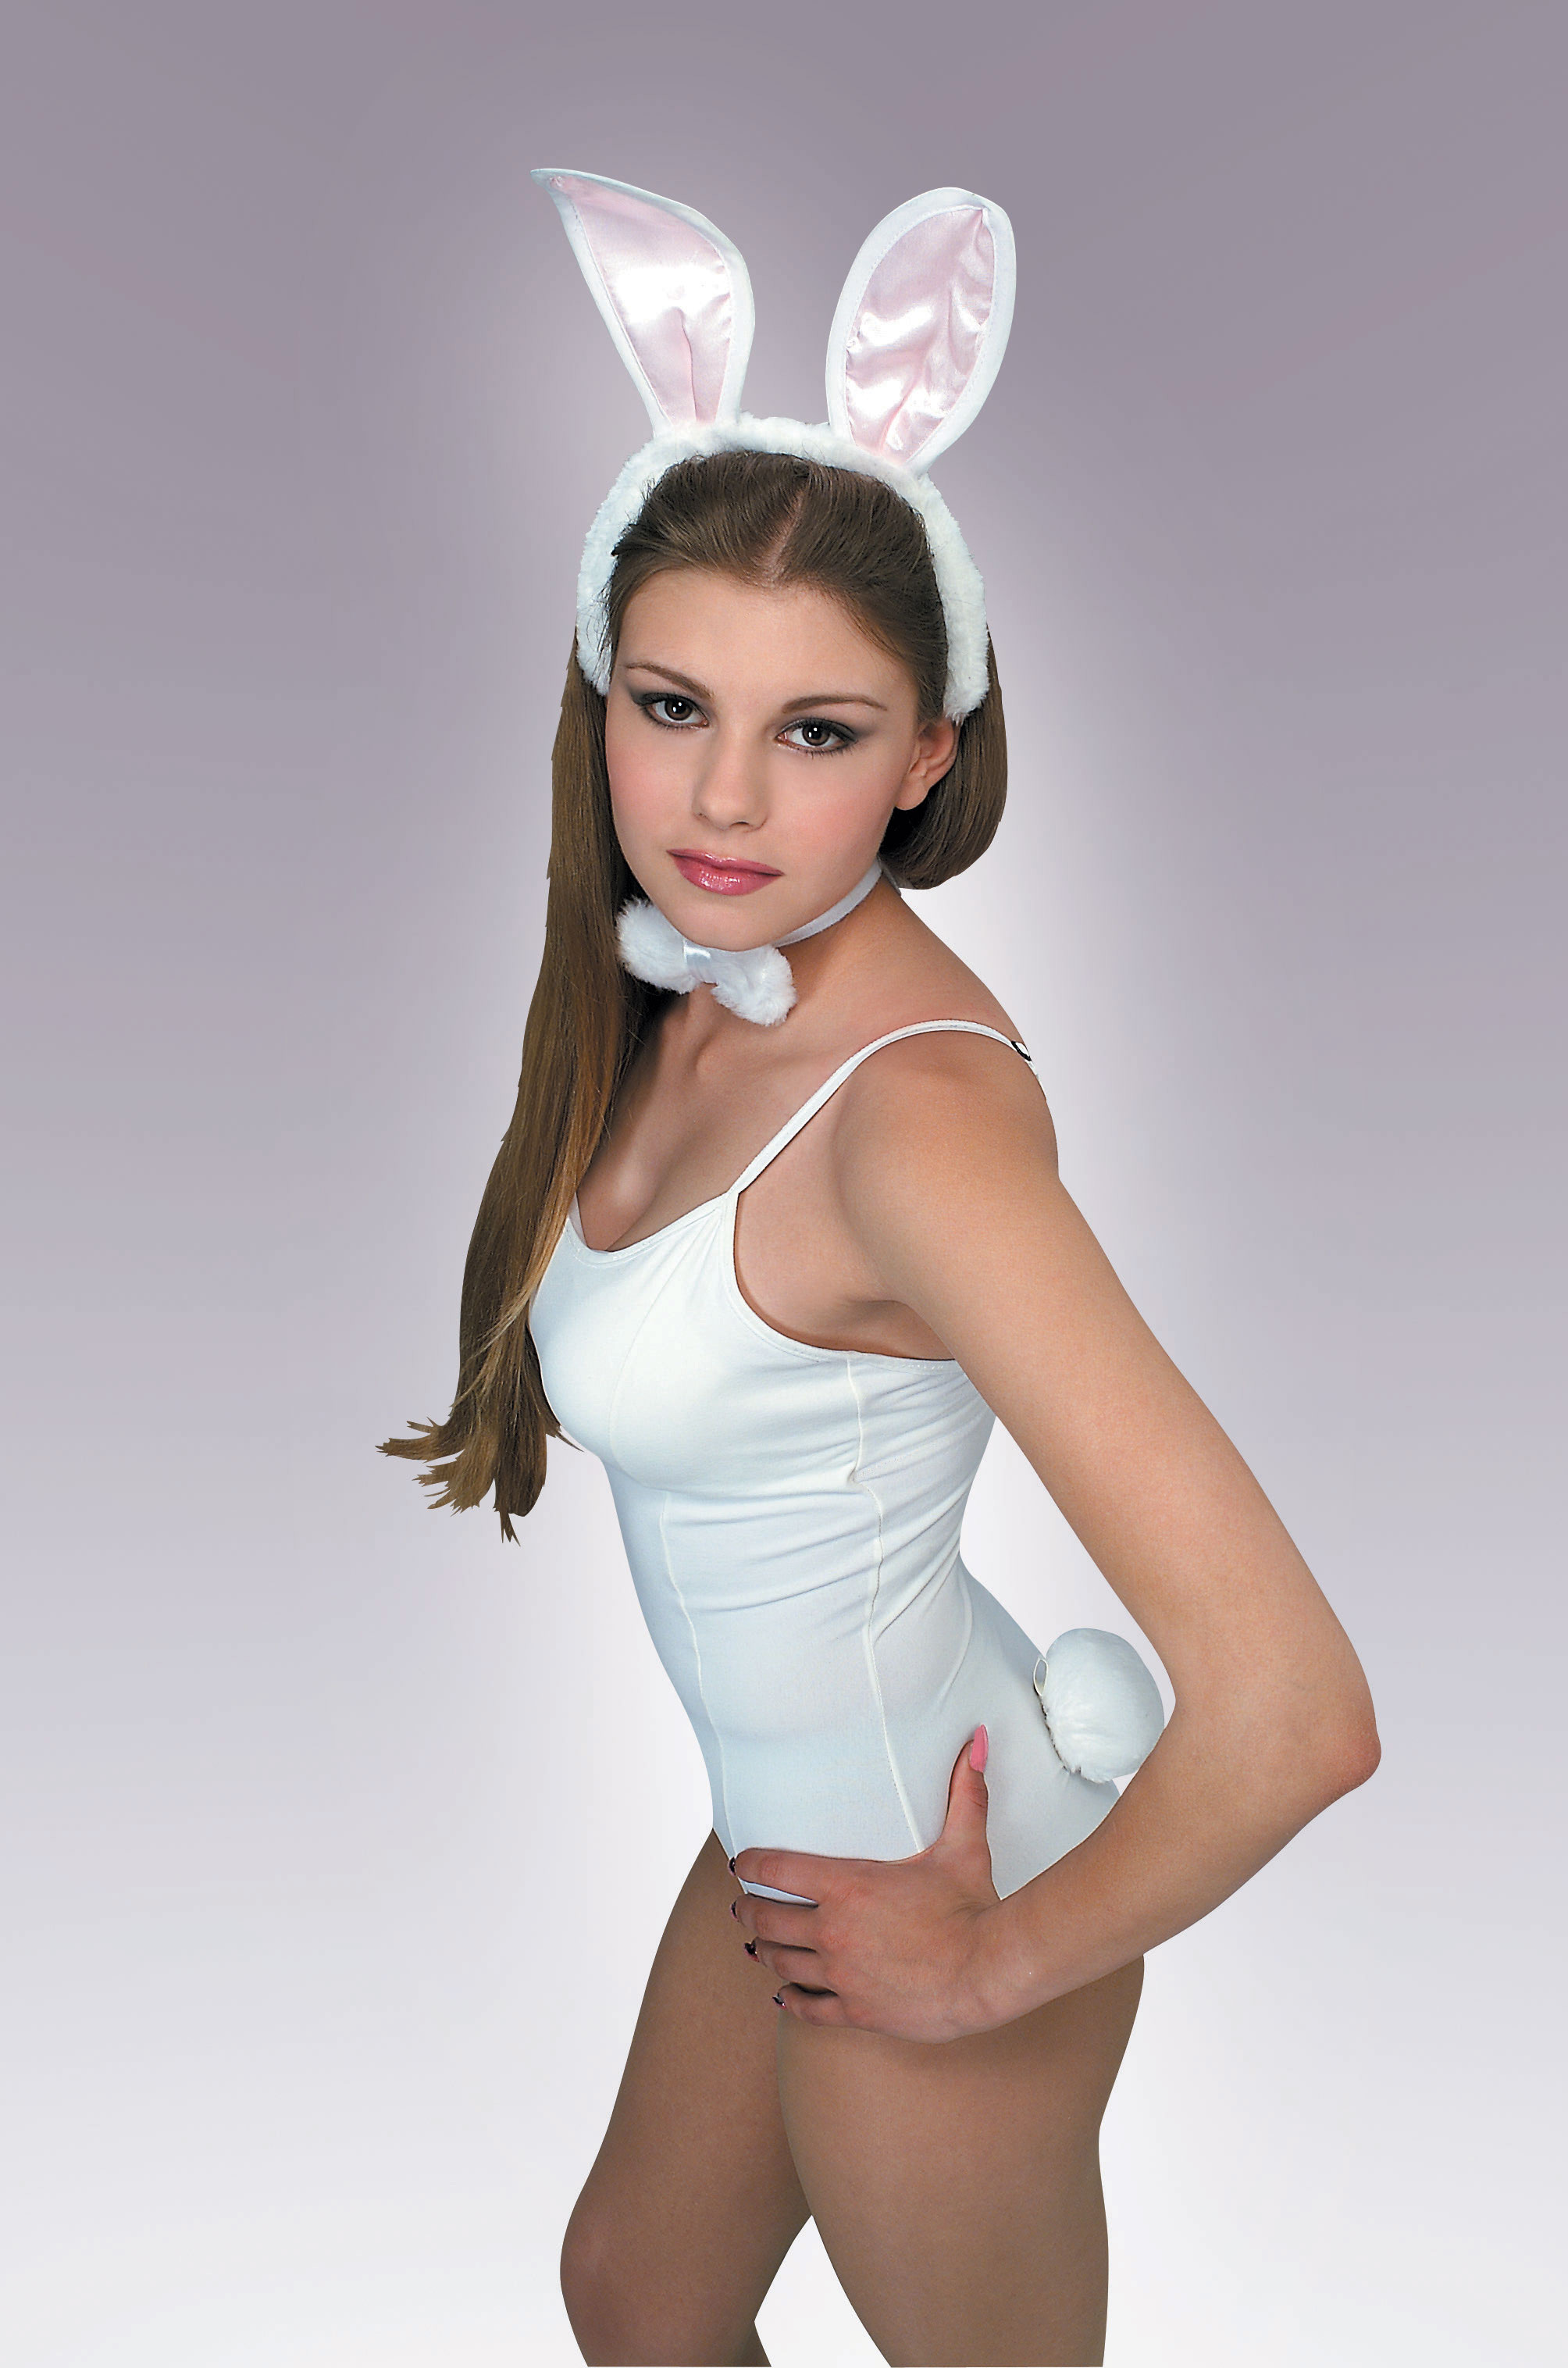 TOP 100 Easter Bunny Adult Sex Costume - The CigarMonkeys